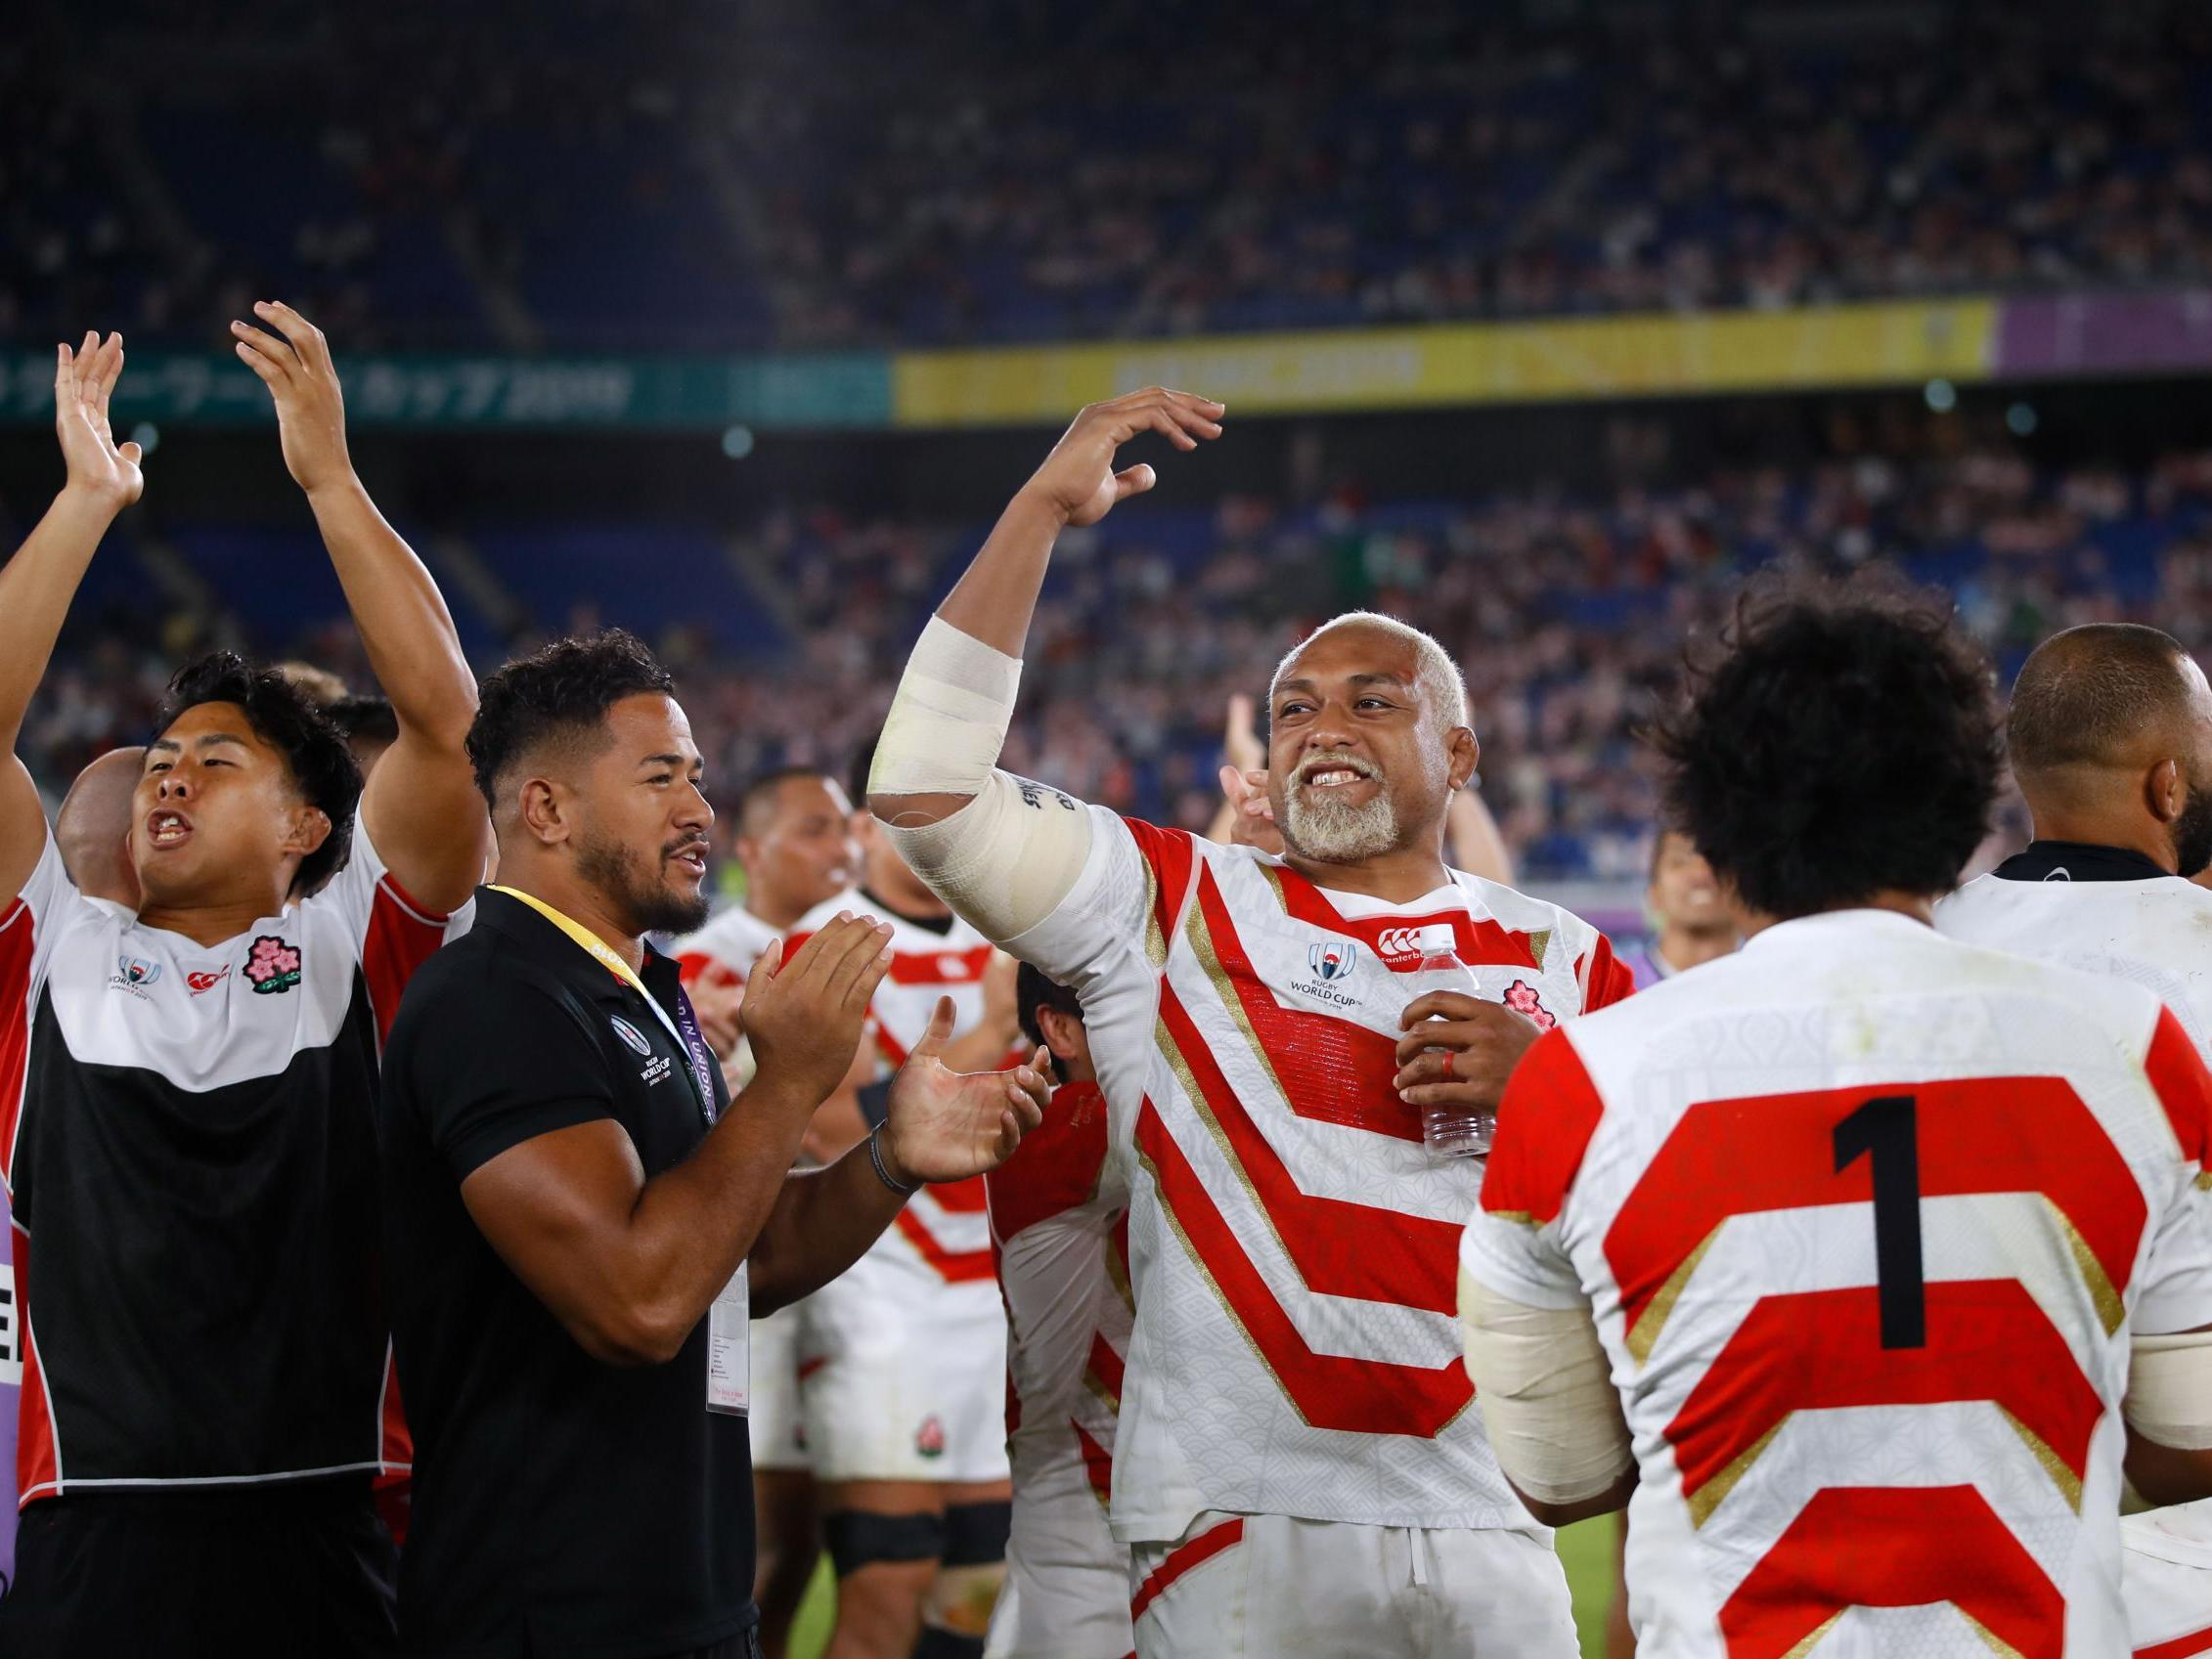 Japan vs Scotland: The Brave Blossoms have once again knocked rugby off its axis – and made more history in the process